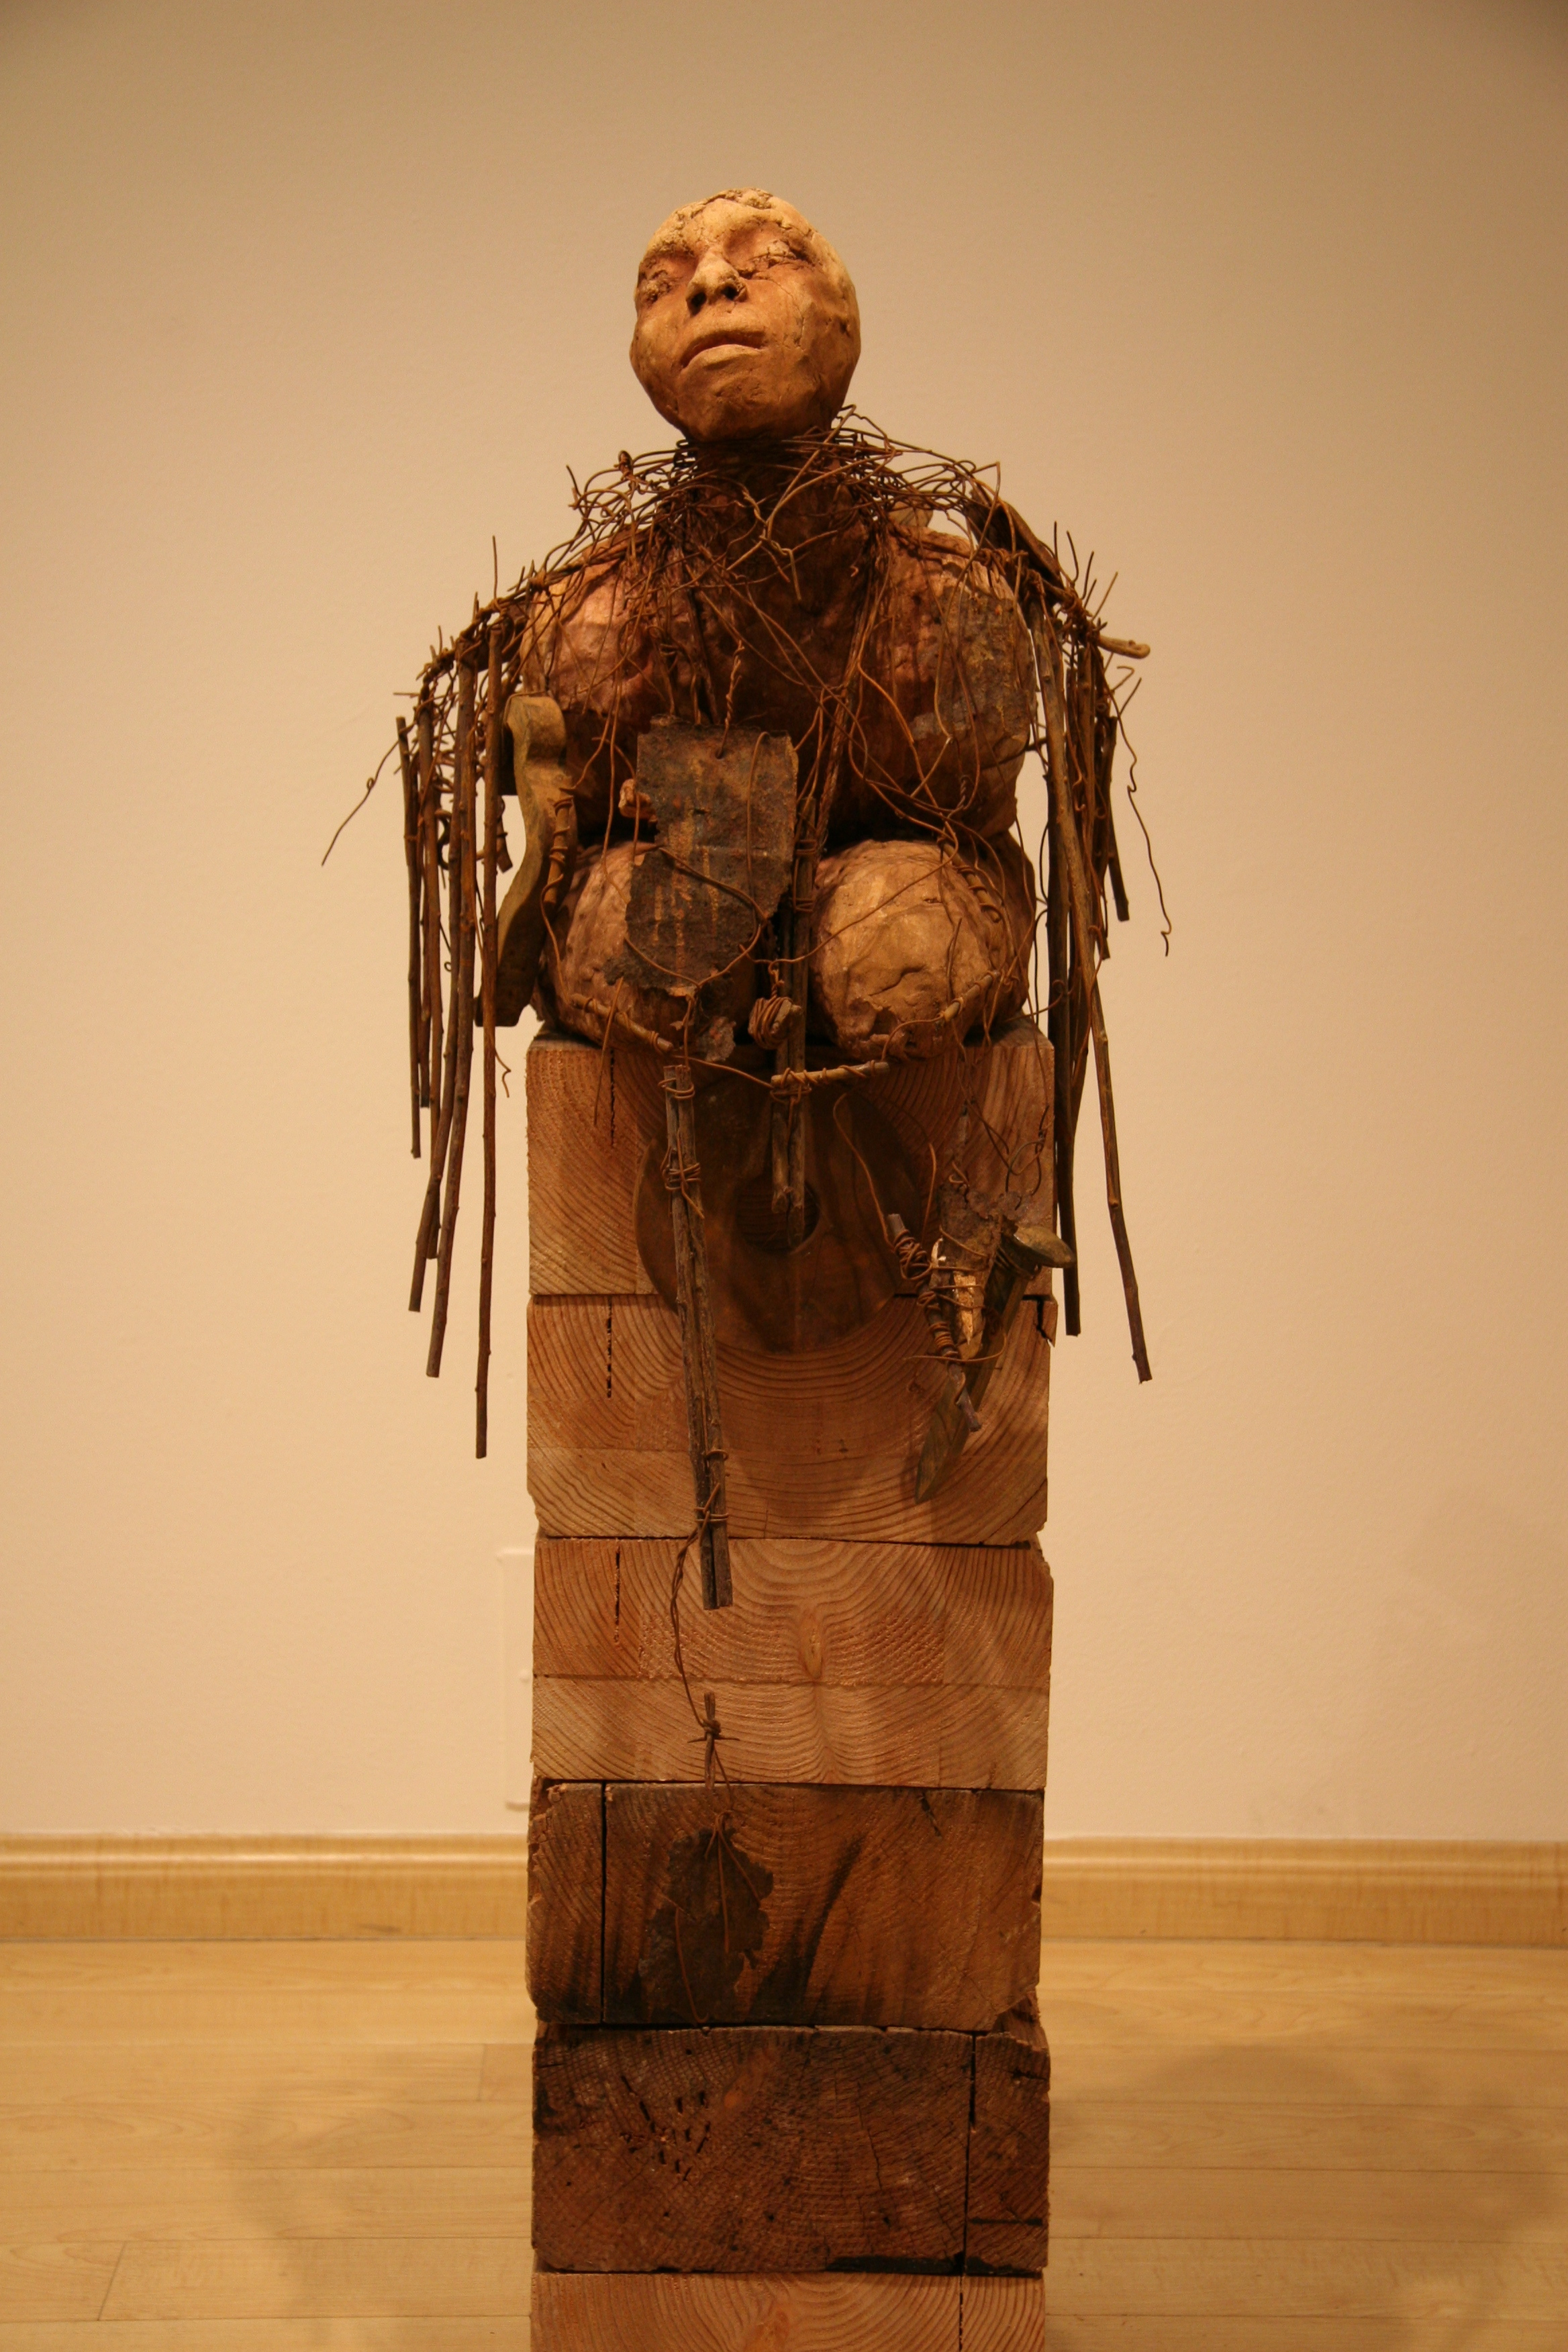 Unconscious forgetfulness   2006-2007  Ceramic, wire, branches with rusted objects  50 x 17 x 24   The figure is weighed down and entangled in detritus of the past that is evidence of suffering that leads to renewal.